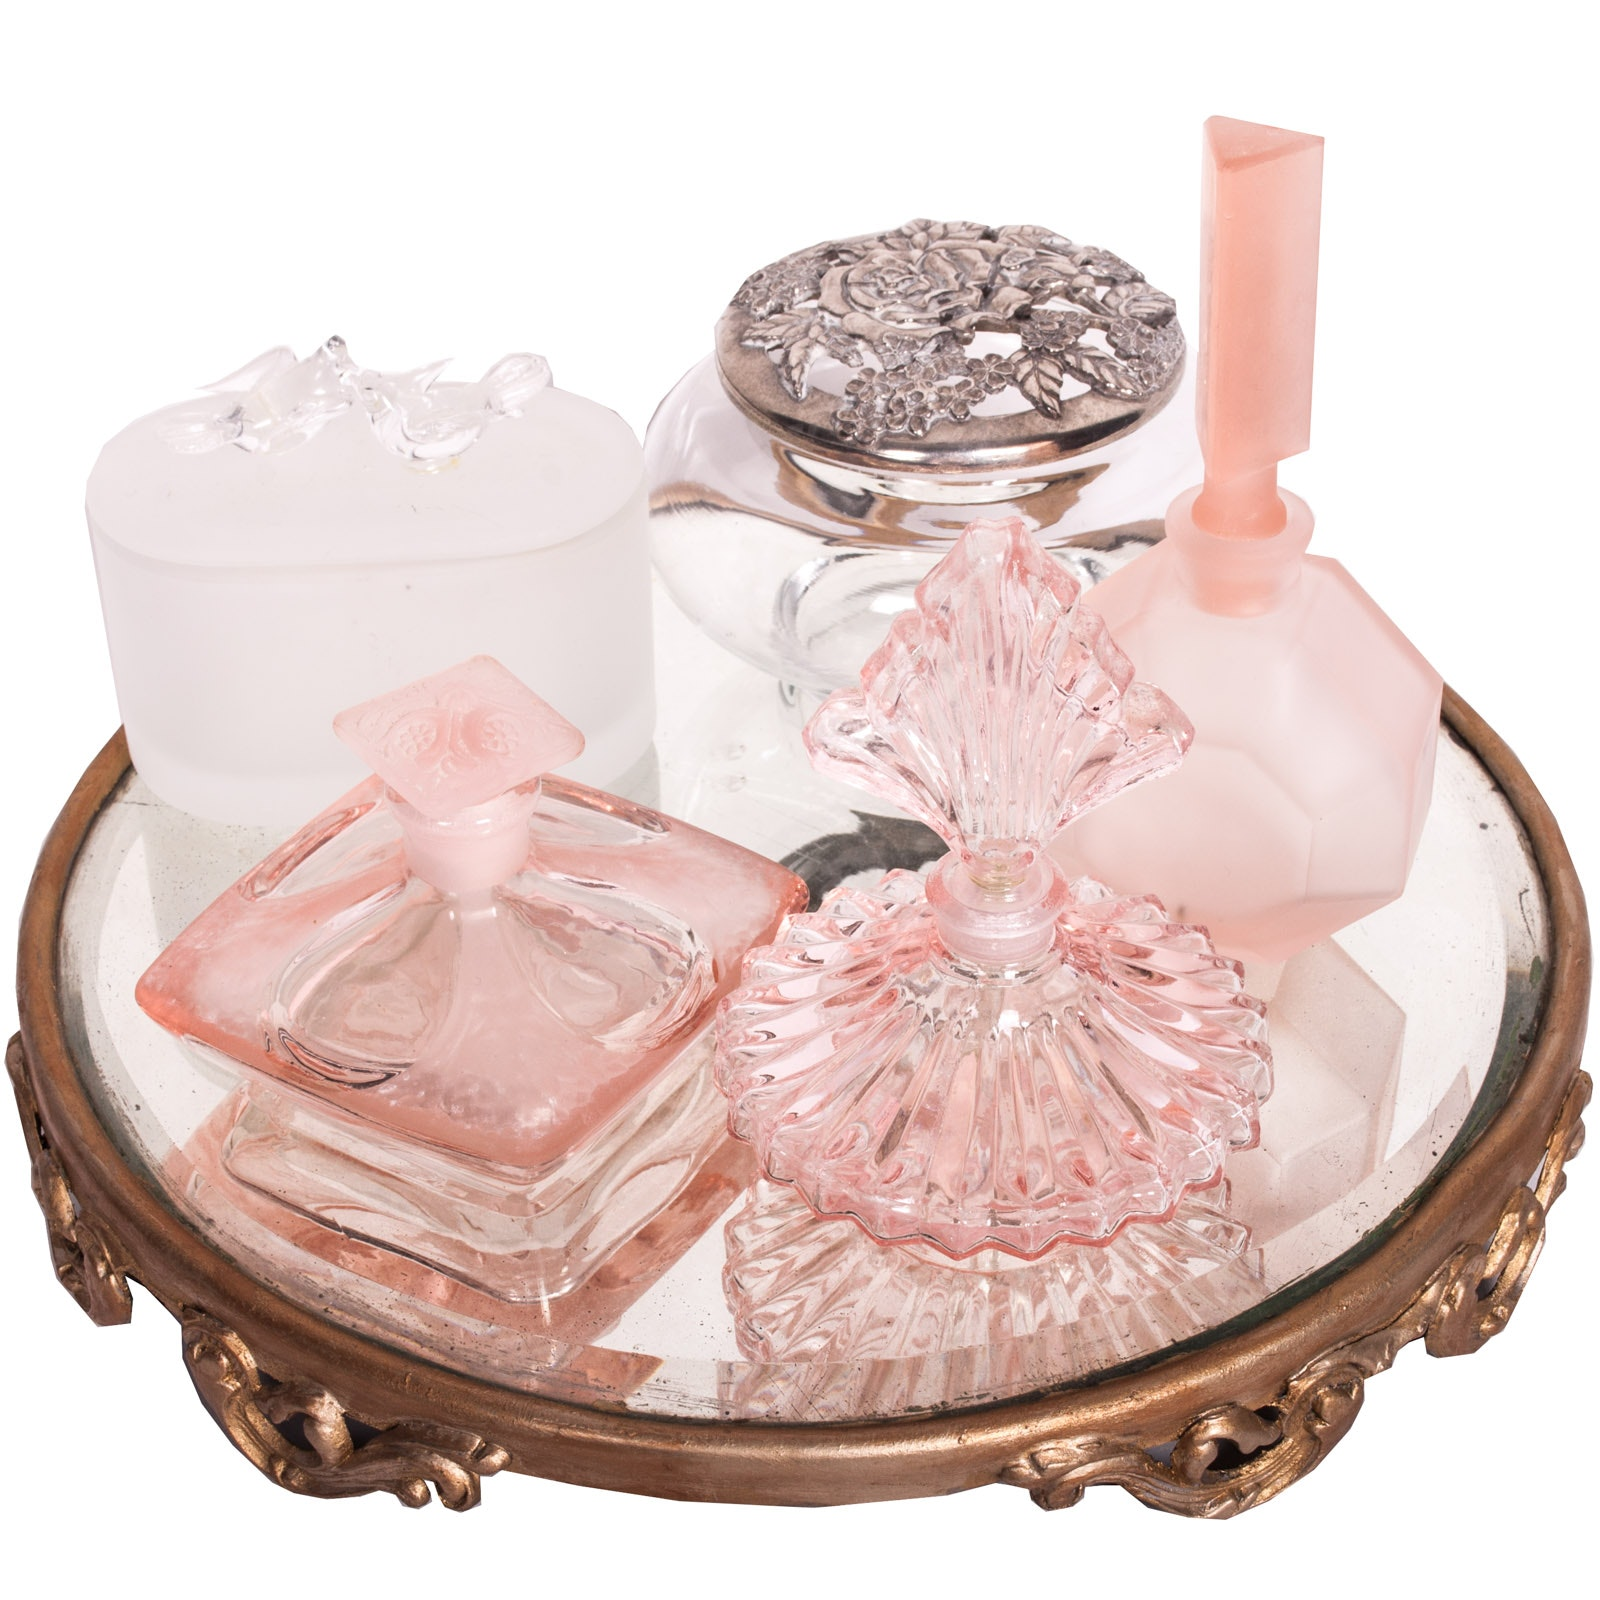 Vintage Table Mirror with Perfume Bottles and Potpourri Jar